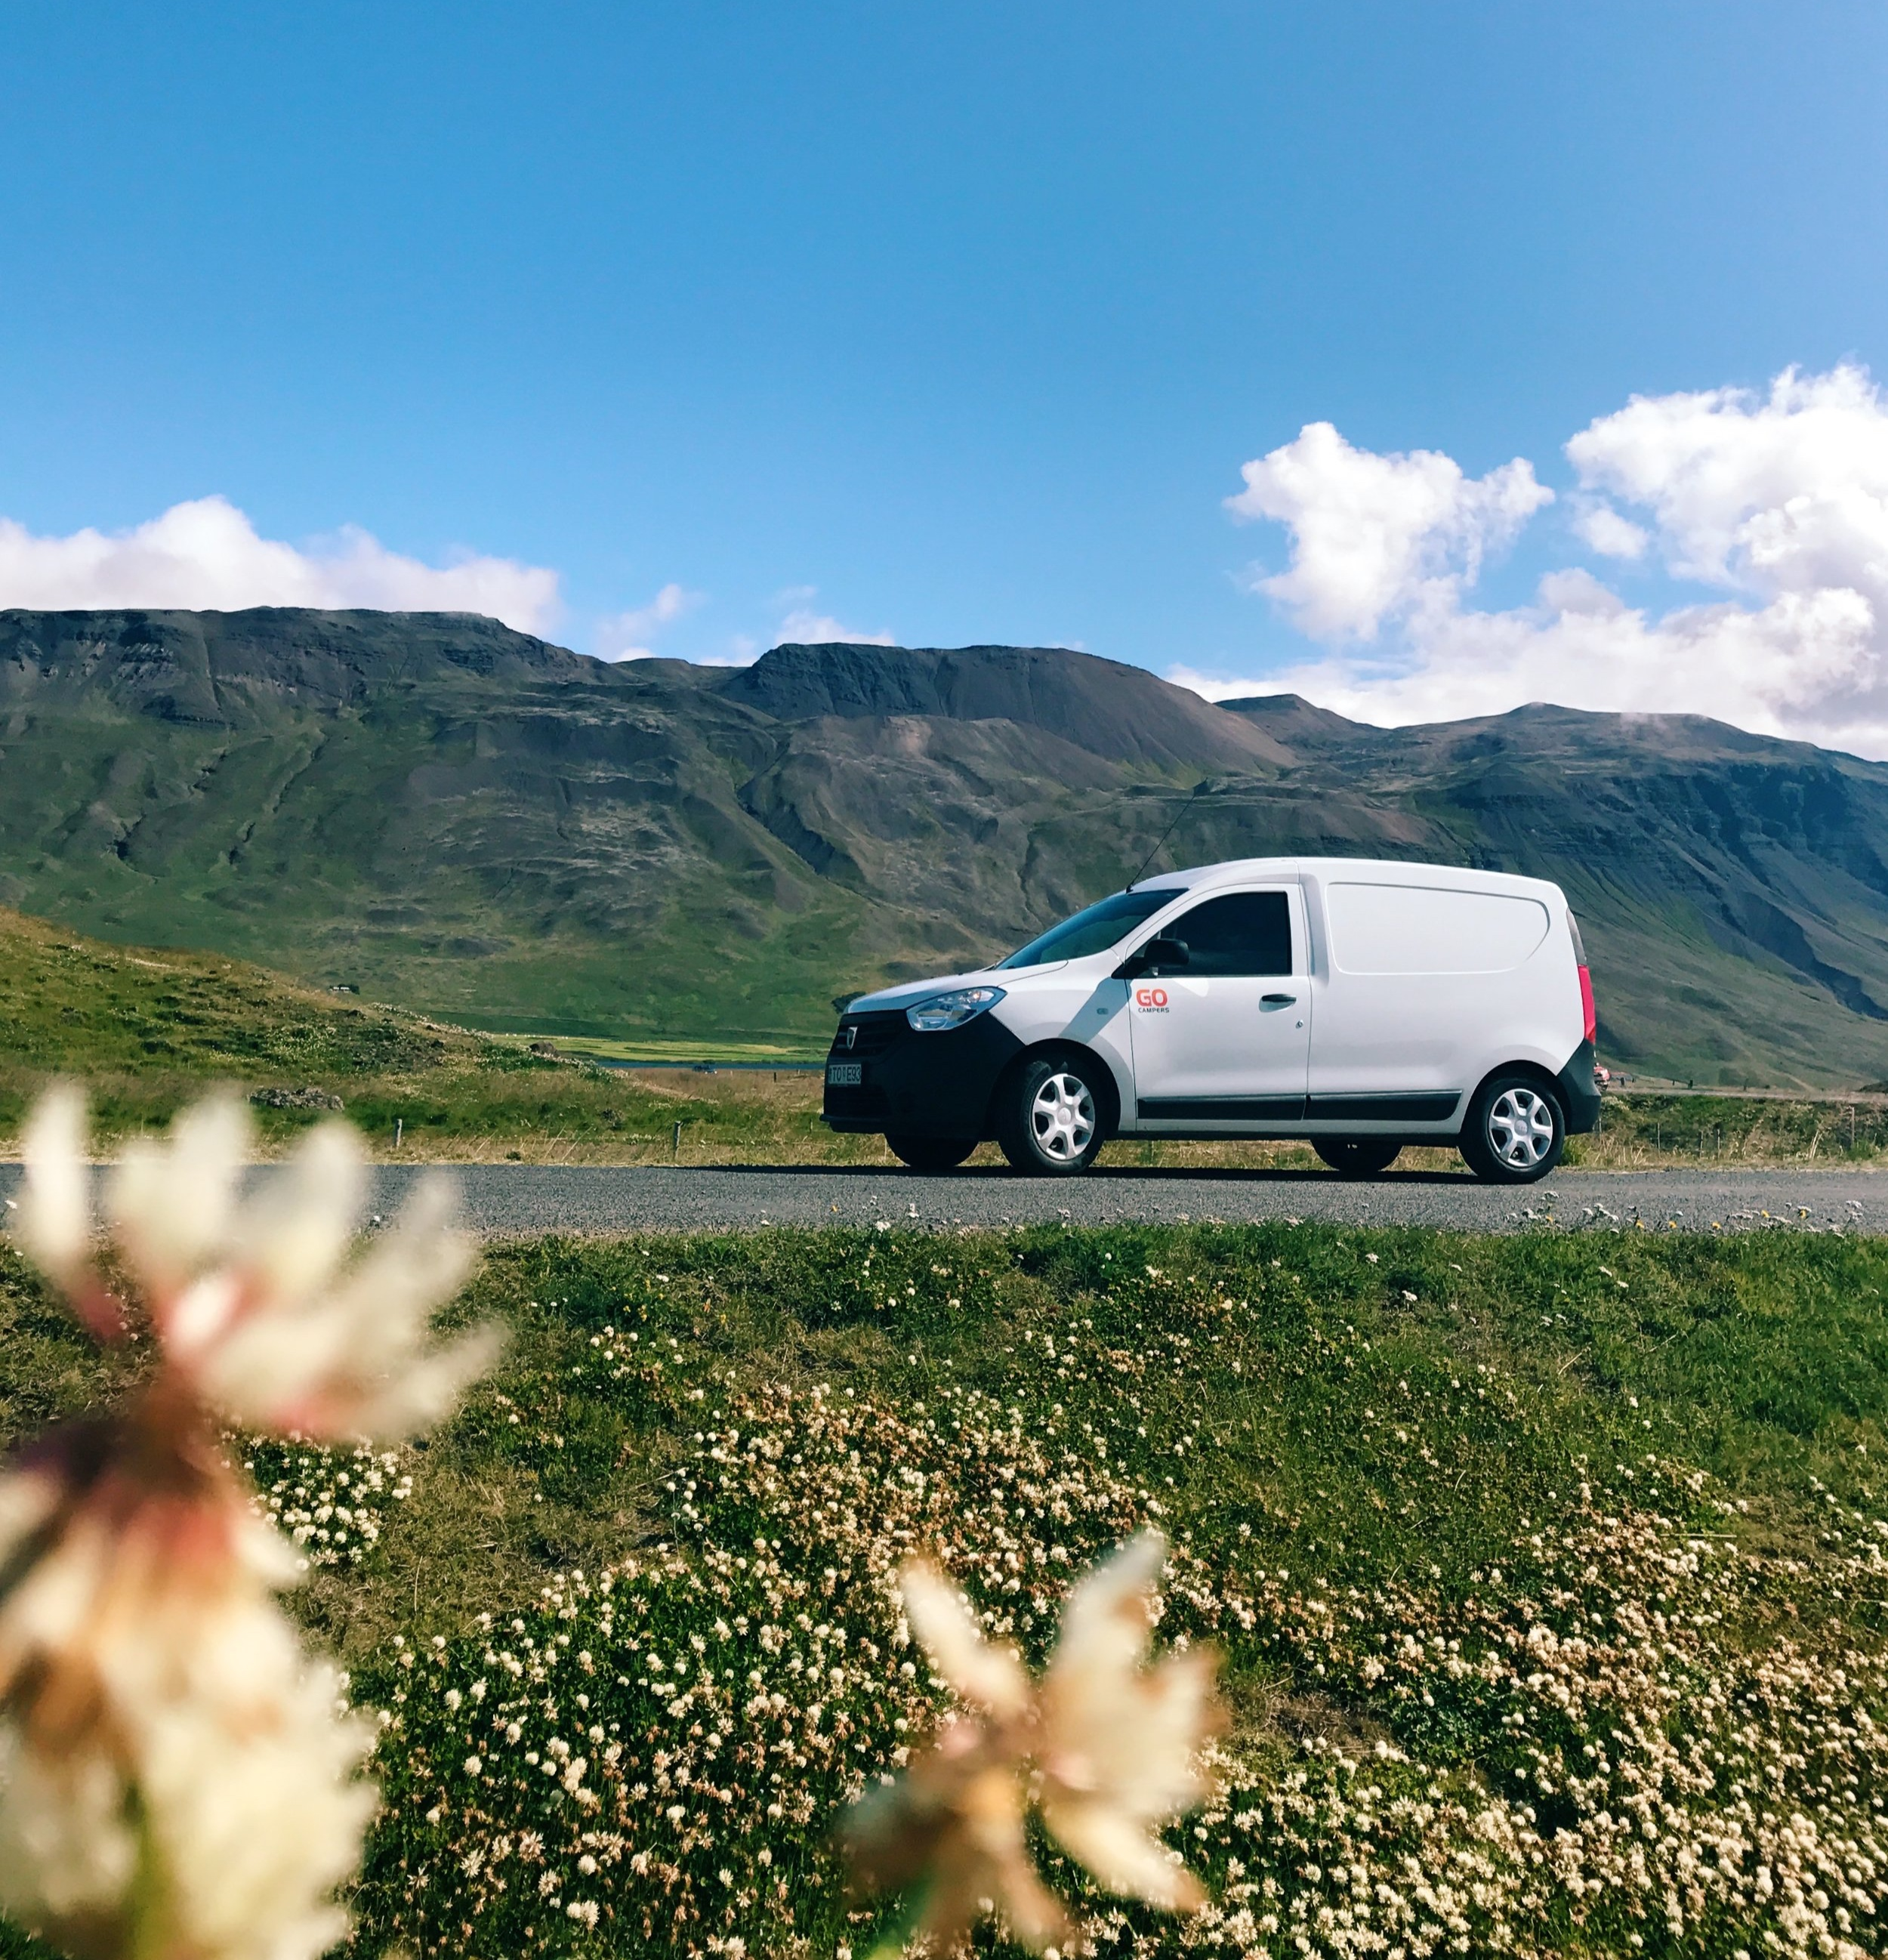 go-campers-iceland-road-trip-ring-golden-circle.jpg